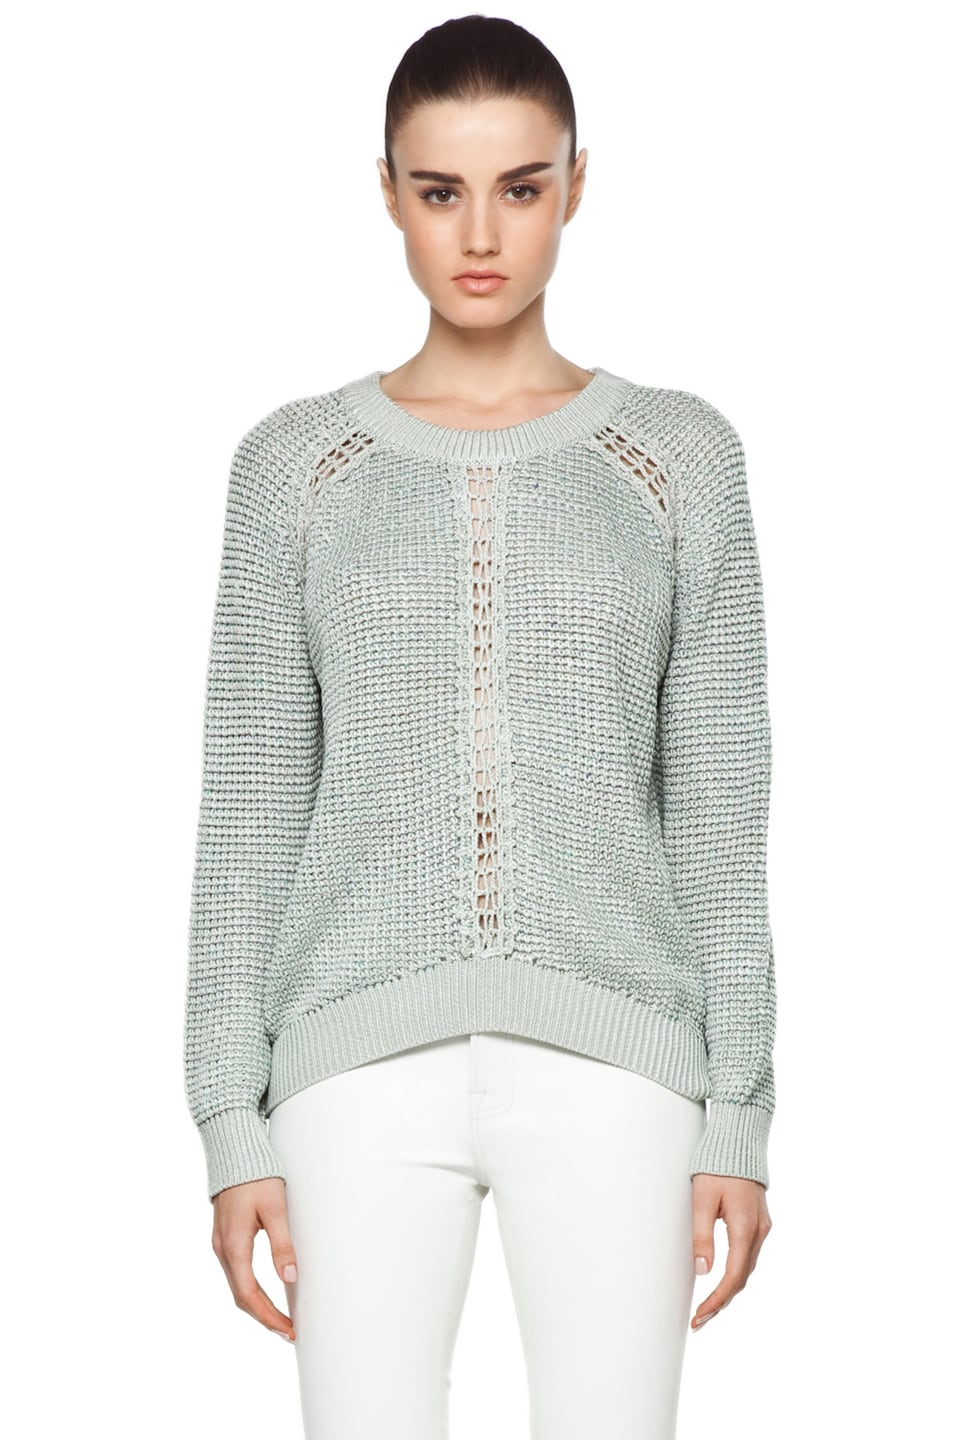 Image 1 of Theyskens' Theory Yigly Kyrt Sweater in Mint Green